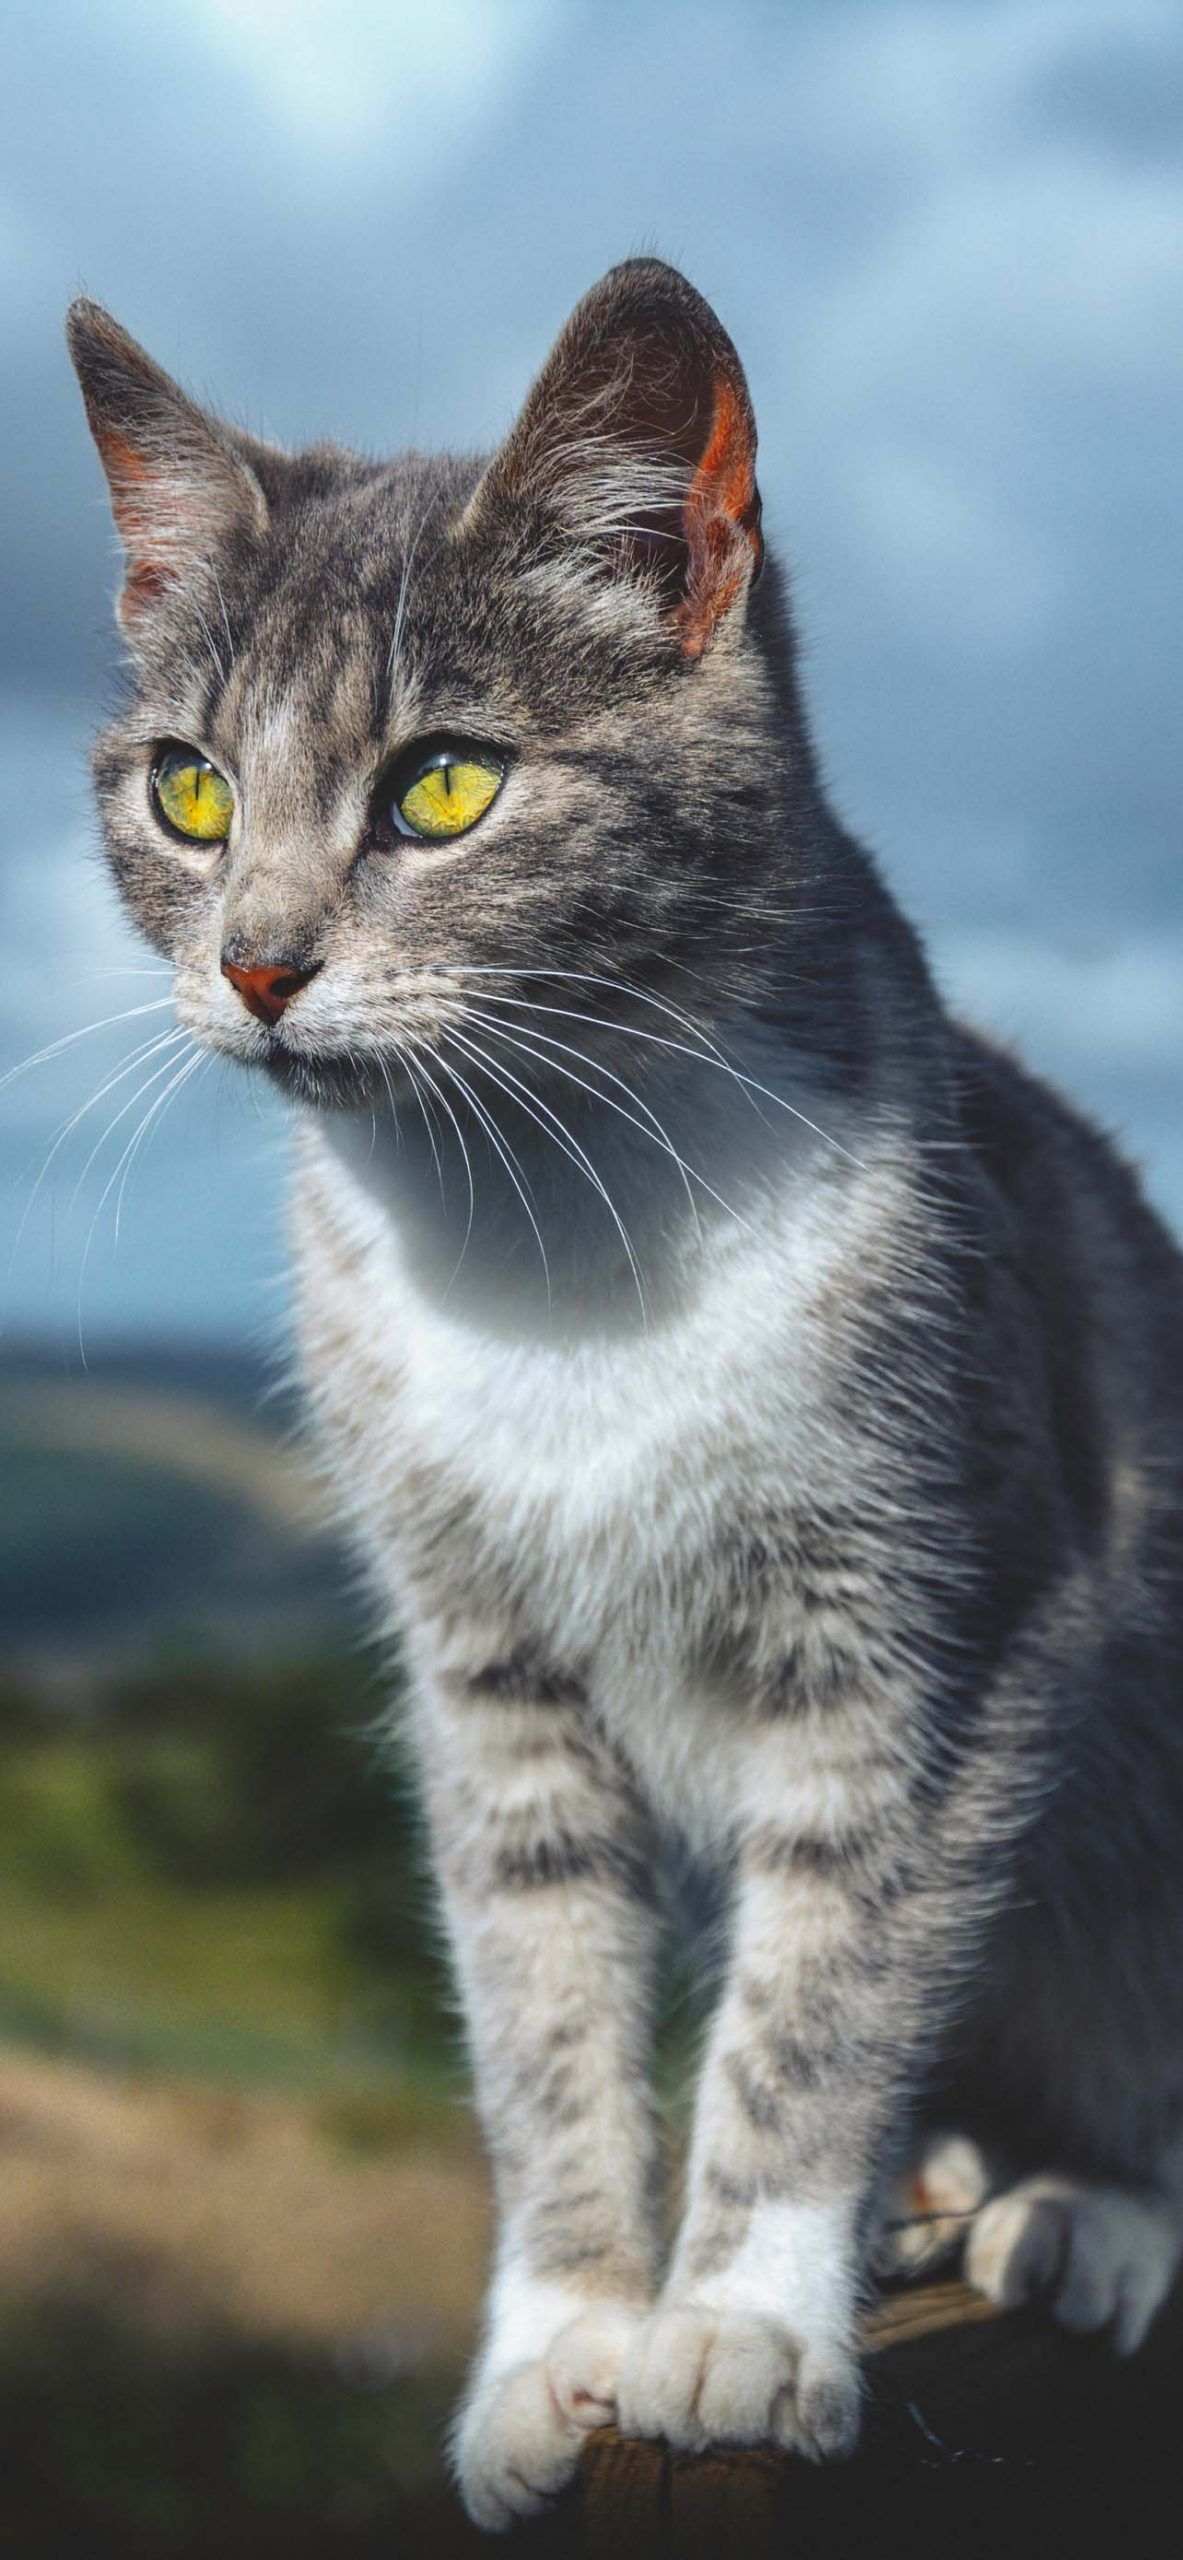 Cat Wallpapers for Phone 2021 – I Like Cats Very Much